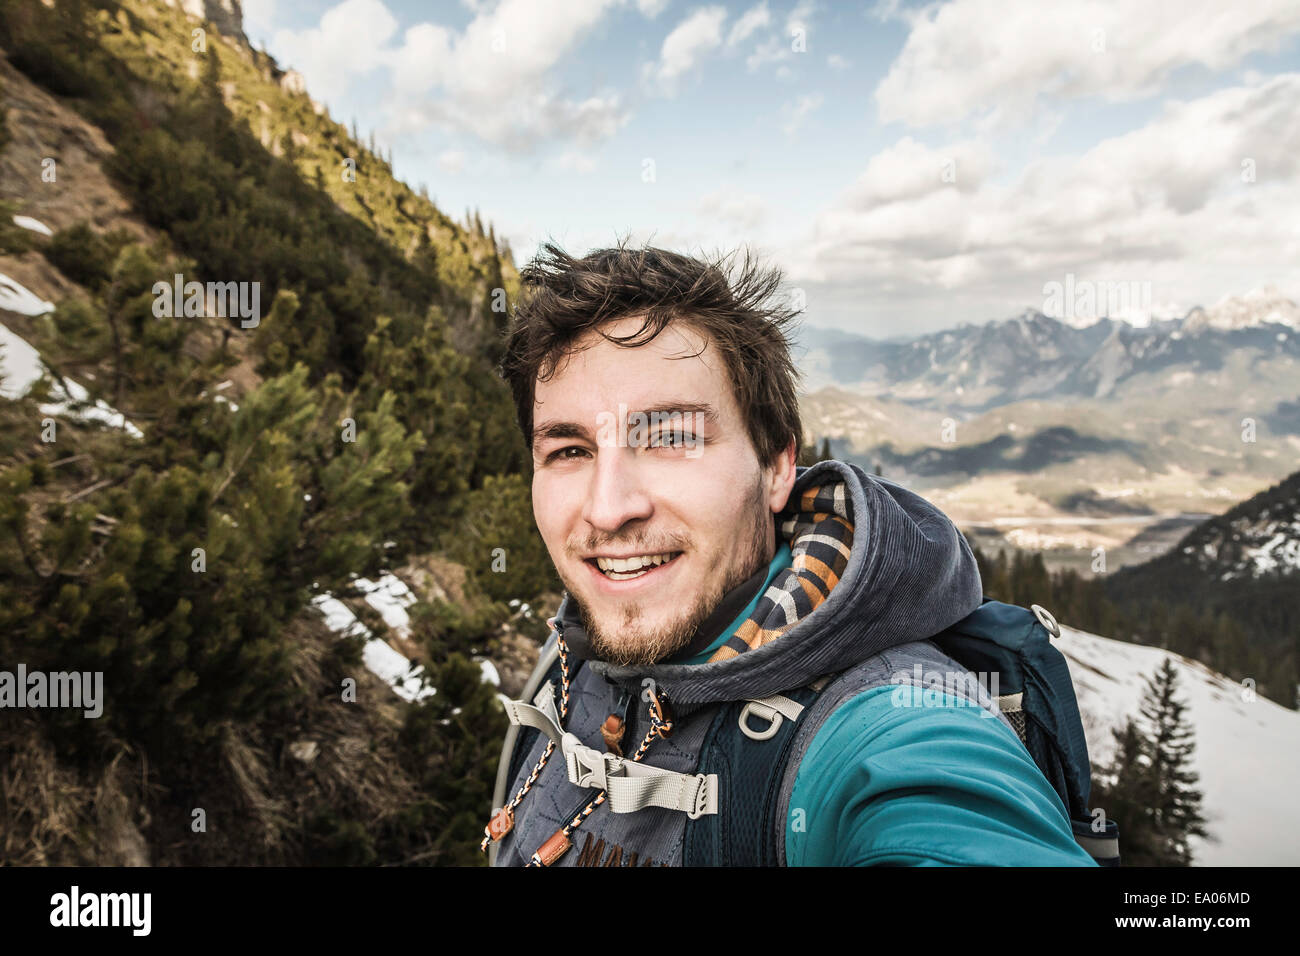 Self portrait of young man in mountains, Hundsarschjoch, Vils, Bavaria, Germany Stock Photo